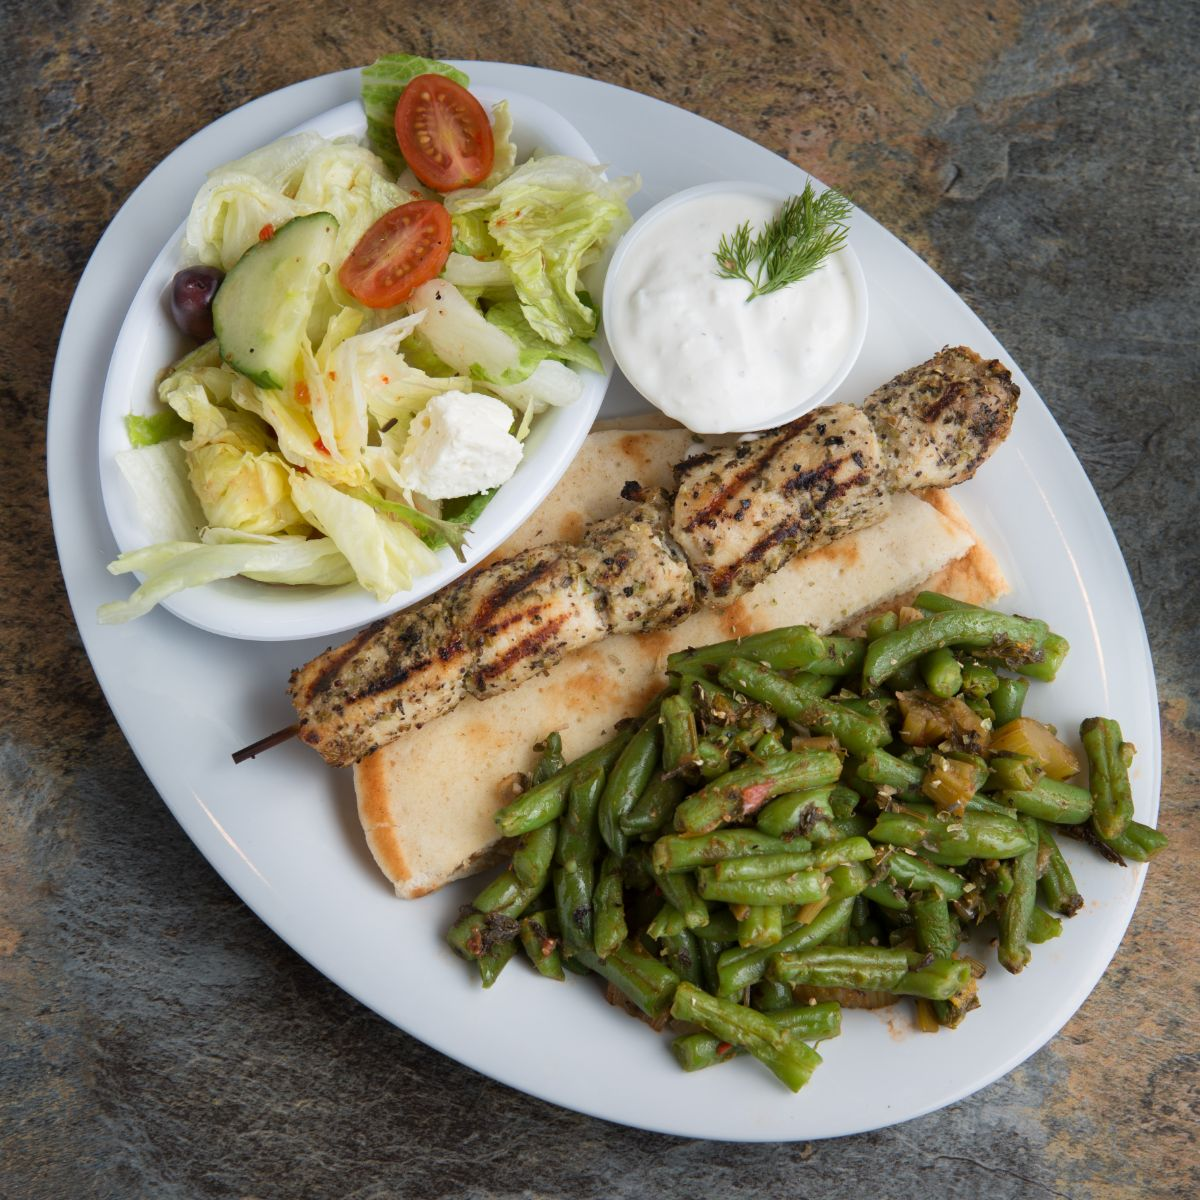 Chicken souvlaki with greek green beans, side salad and pita bread